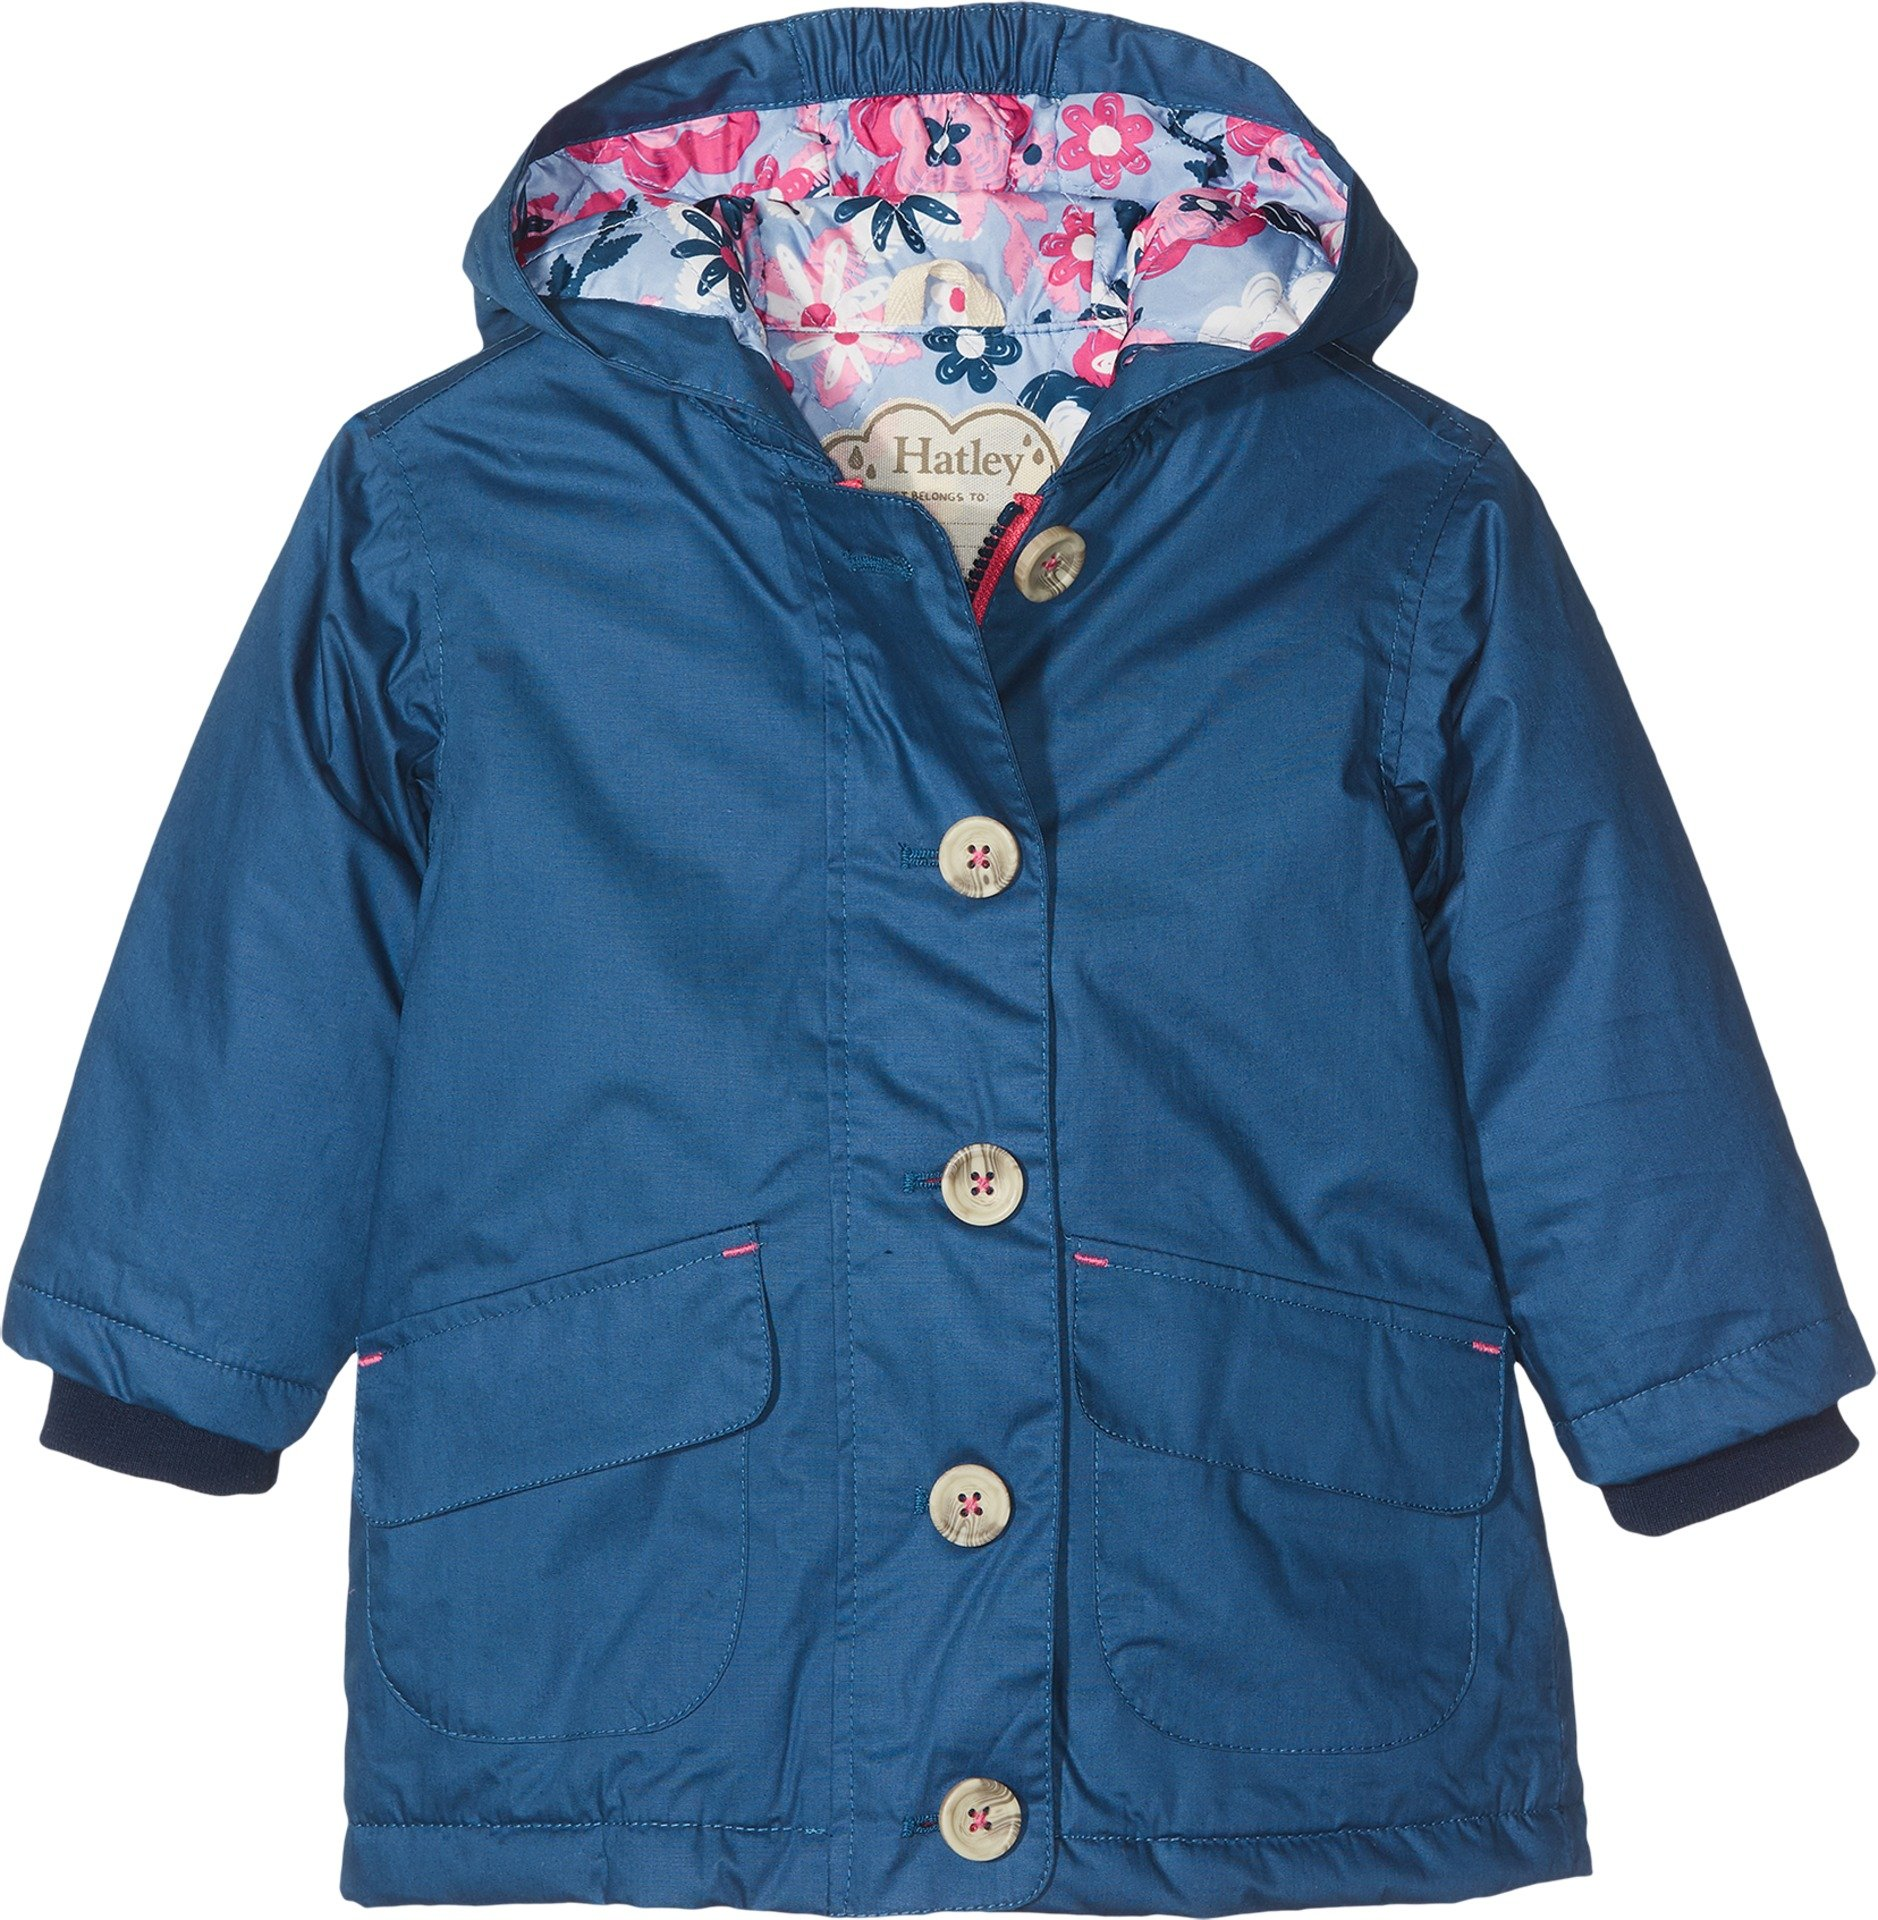 Hatley Big Girls' Cotton Coated Raincoats, Navy Wintery Blooms, 8